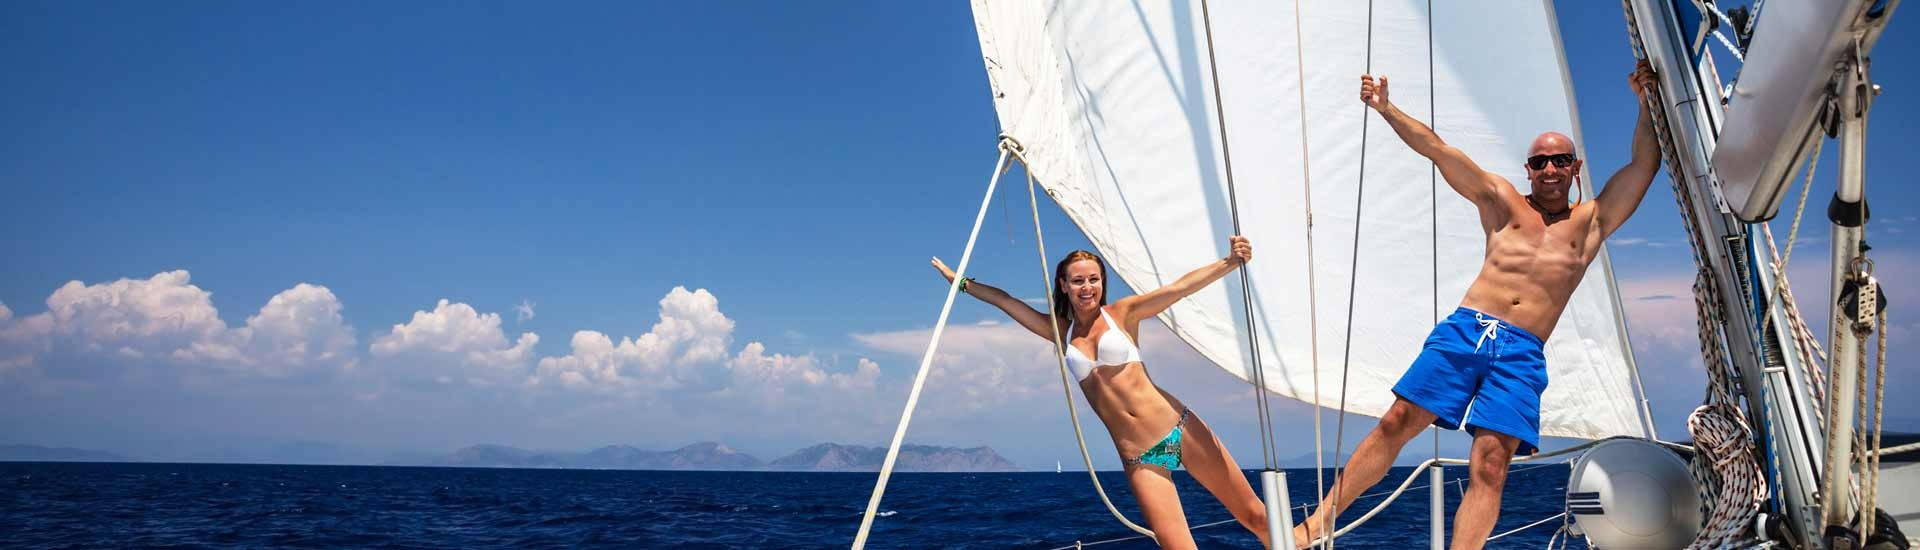 Have fun on sailing yacht